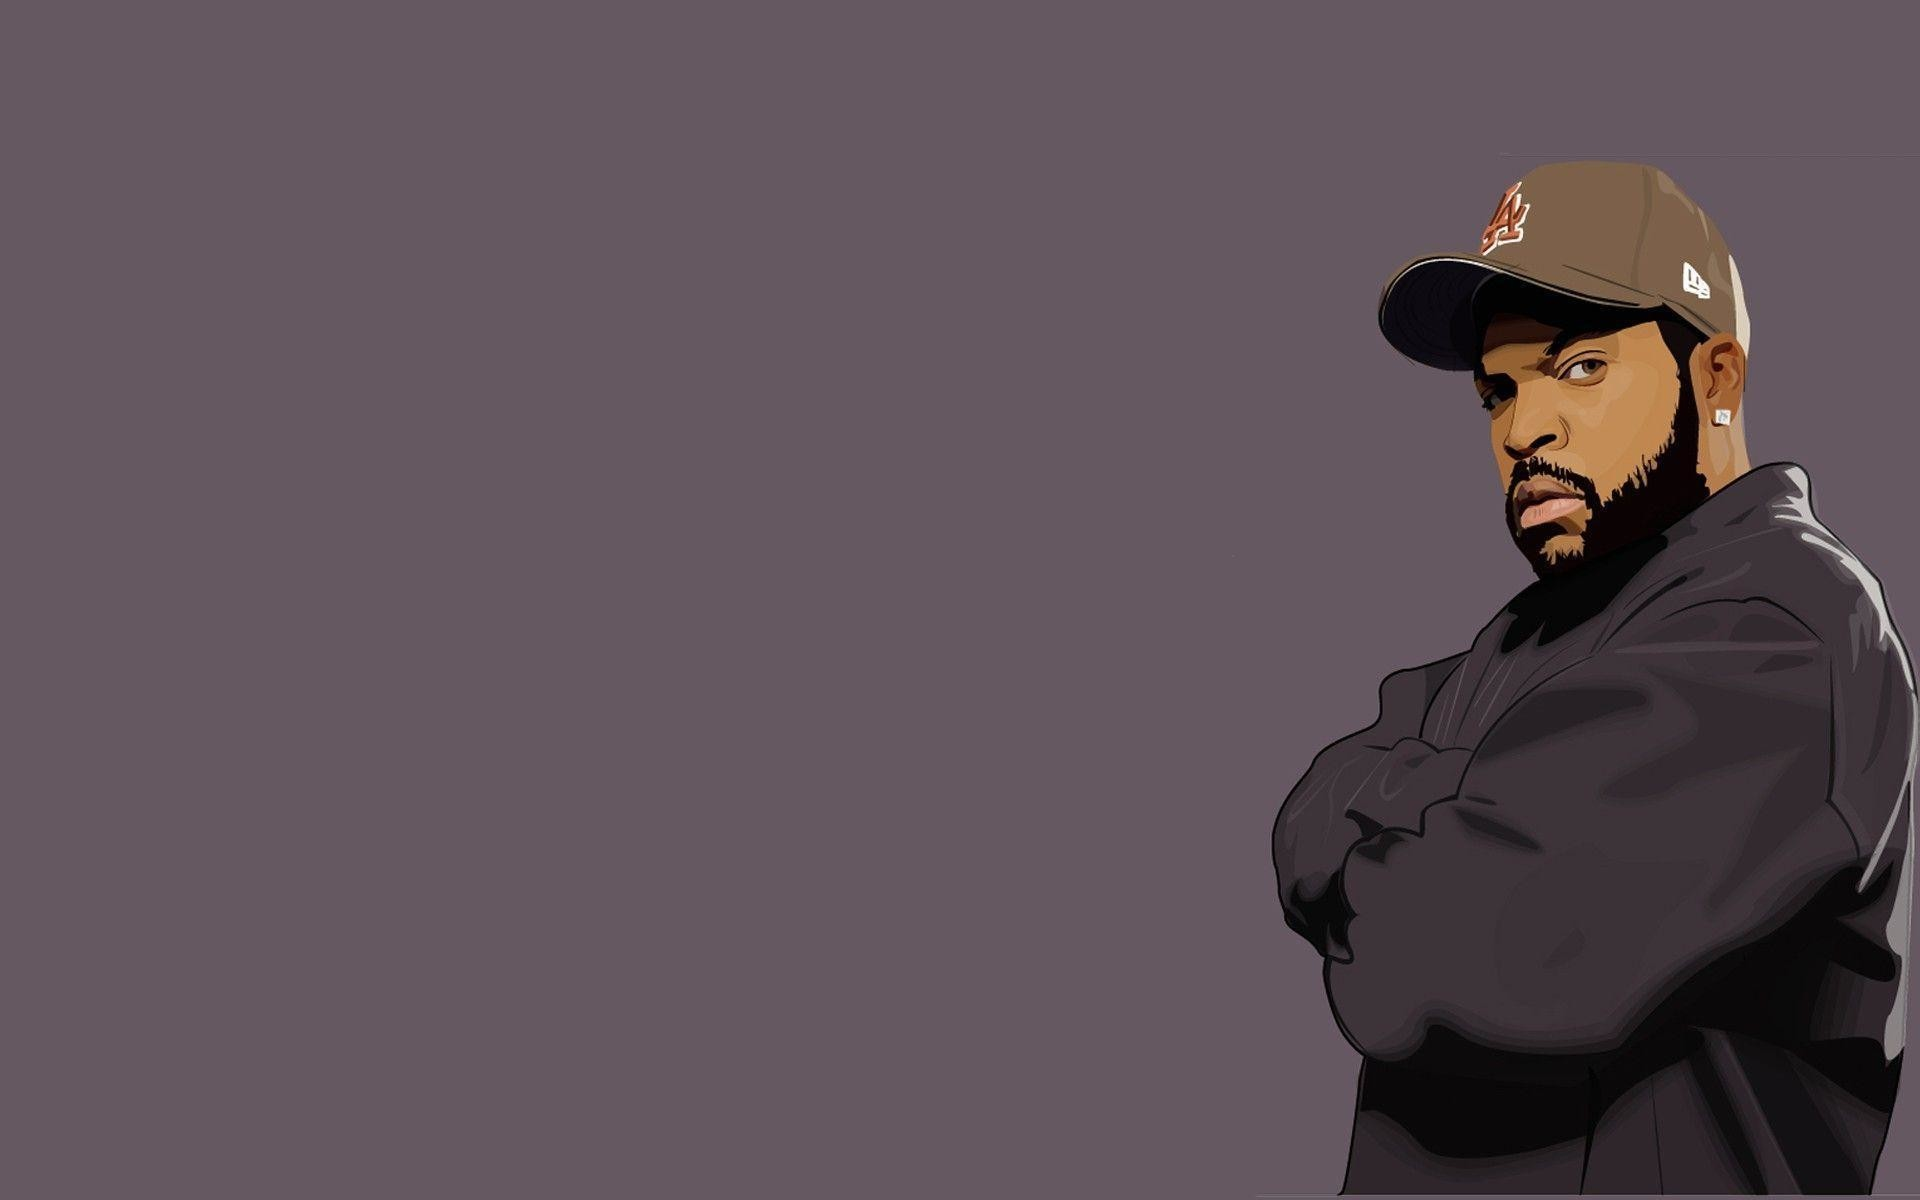 Ice Cube Wallpapers – Full HD wallpaper search